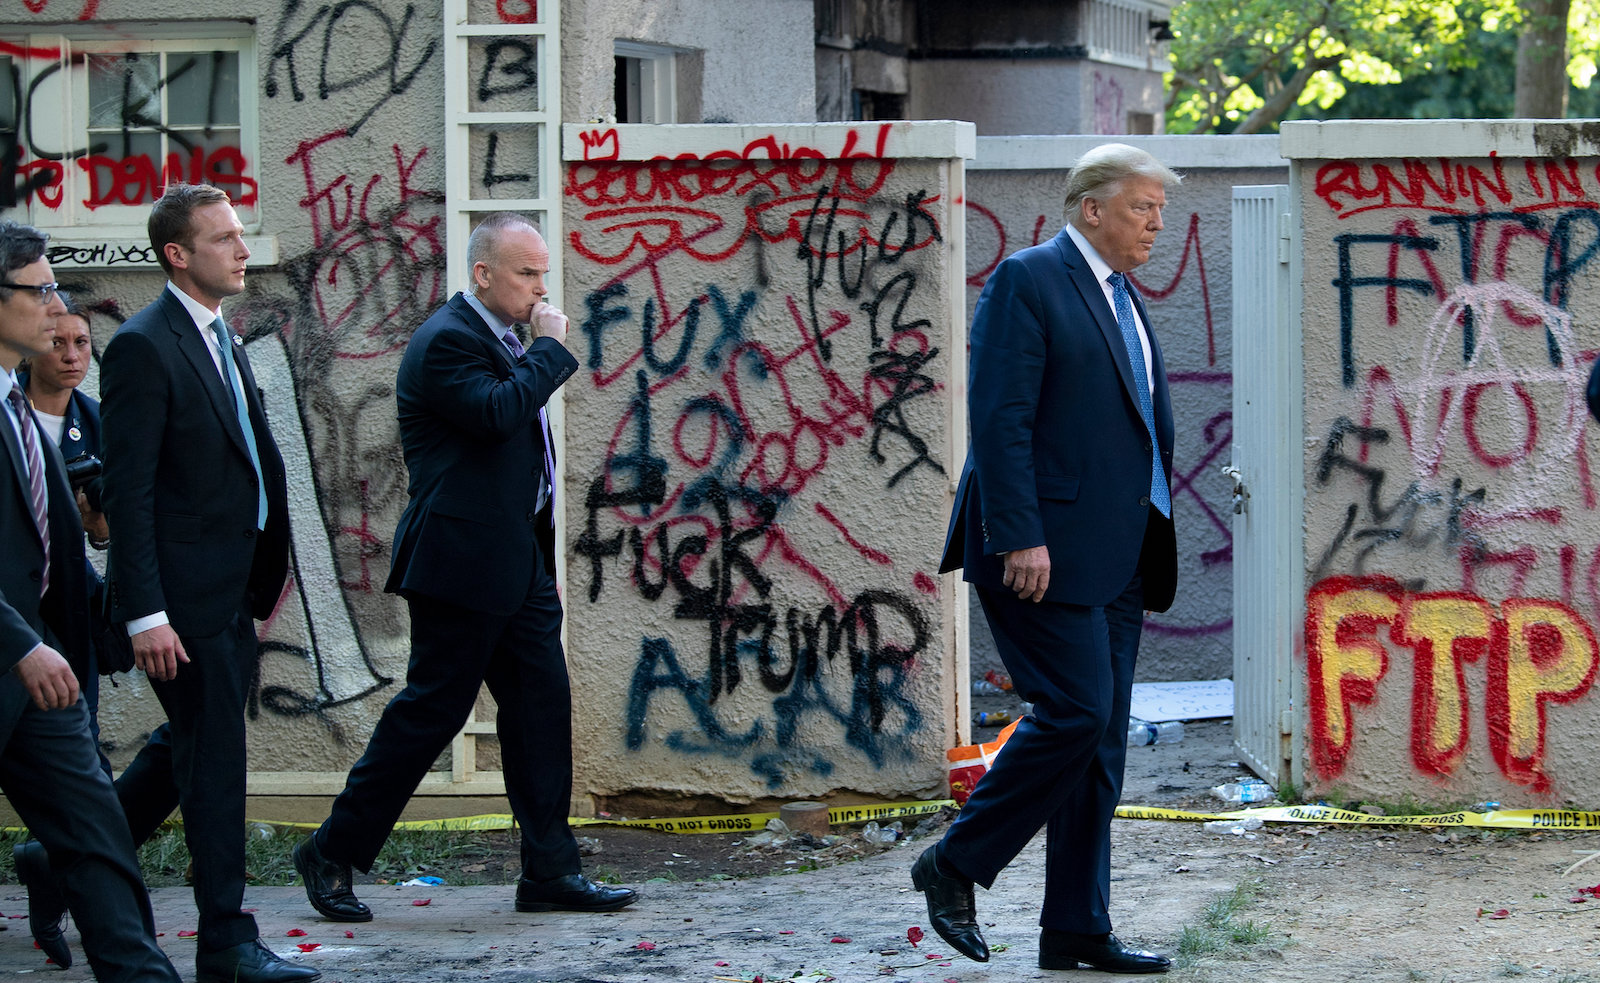 US President Donald Trump walks back to the White House escorted by the Secret Service after appearing outside of St John's Episcopal church across Lafayette Park in Washington, DC, June 1, 2020. Photo: AFP/ Brendan Smialowski